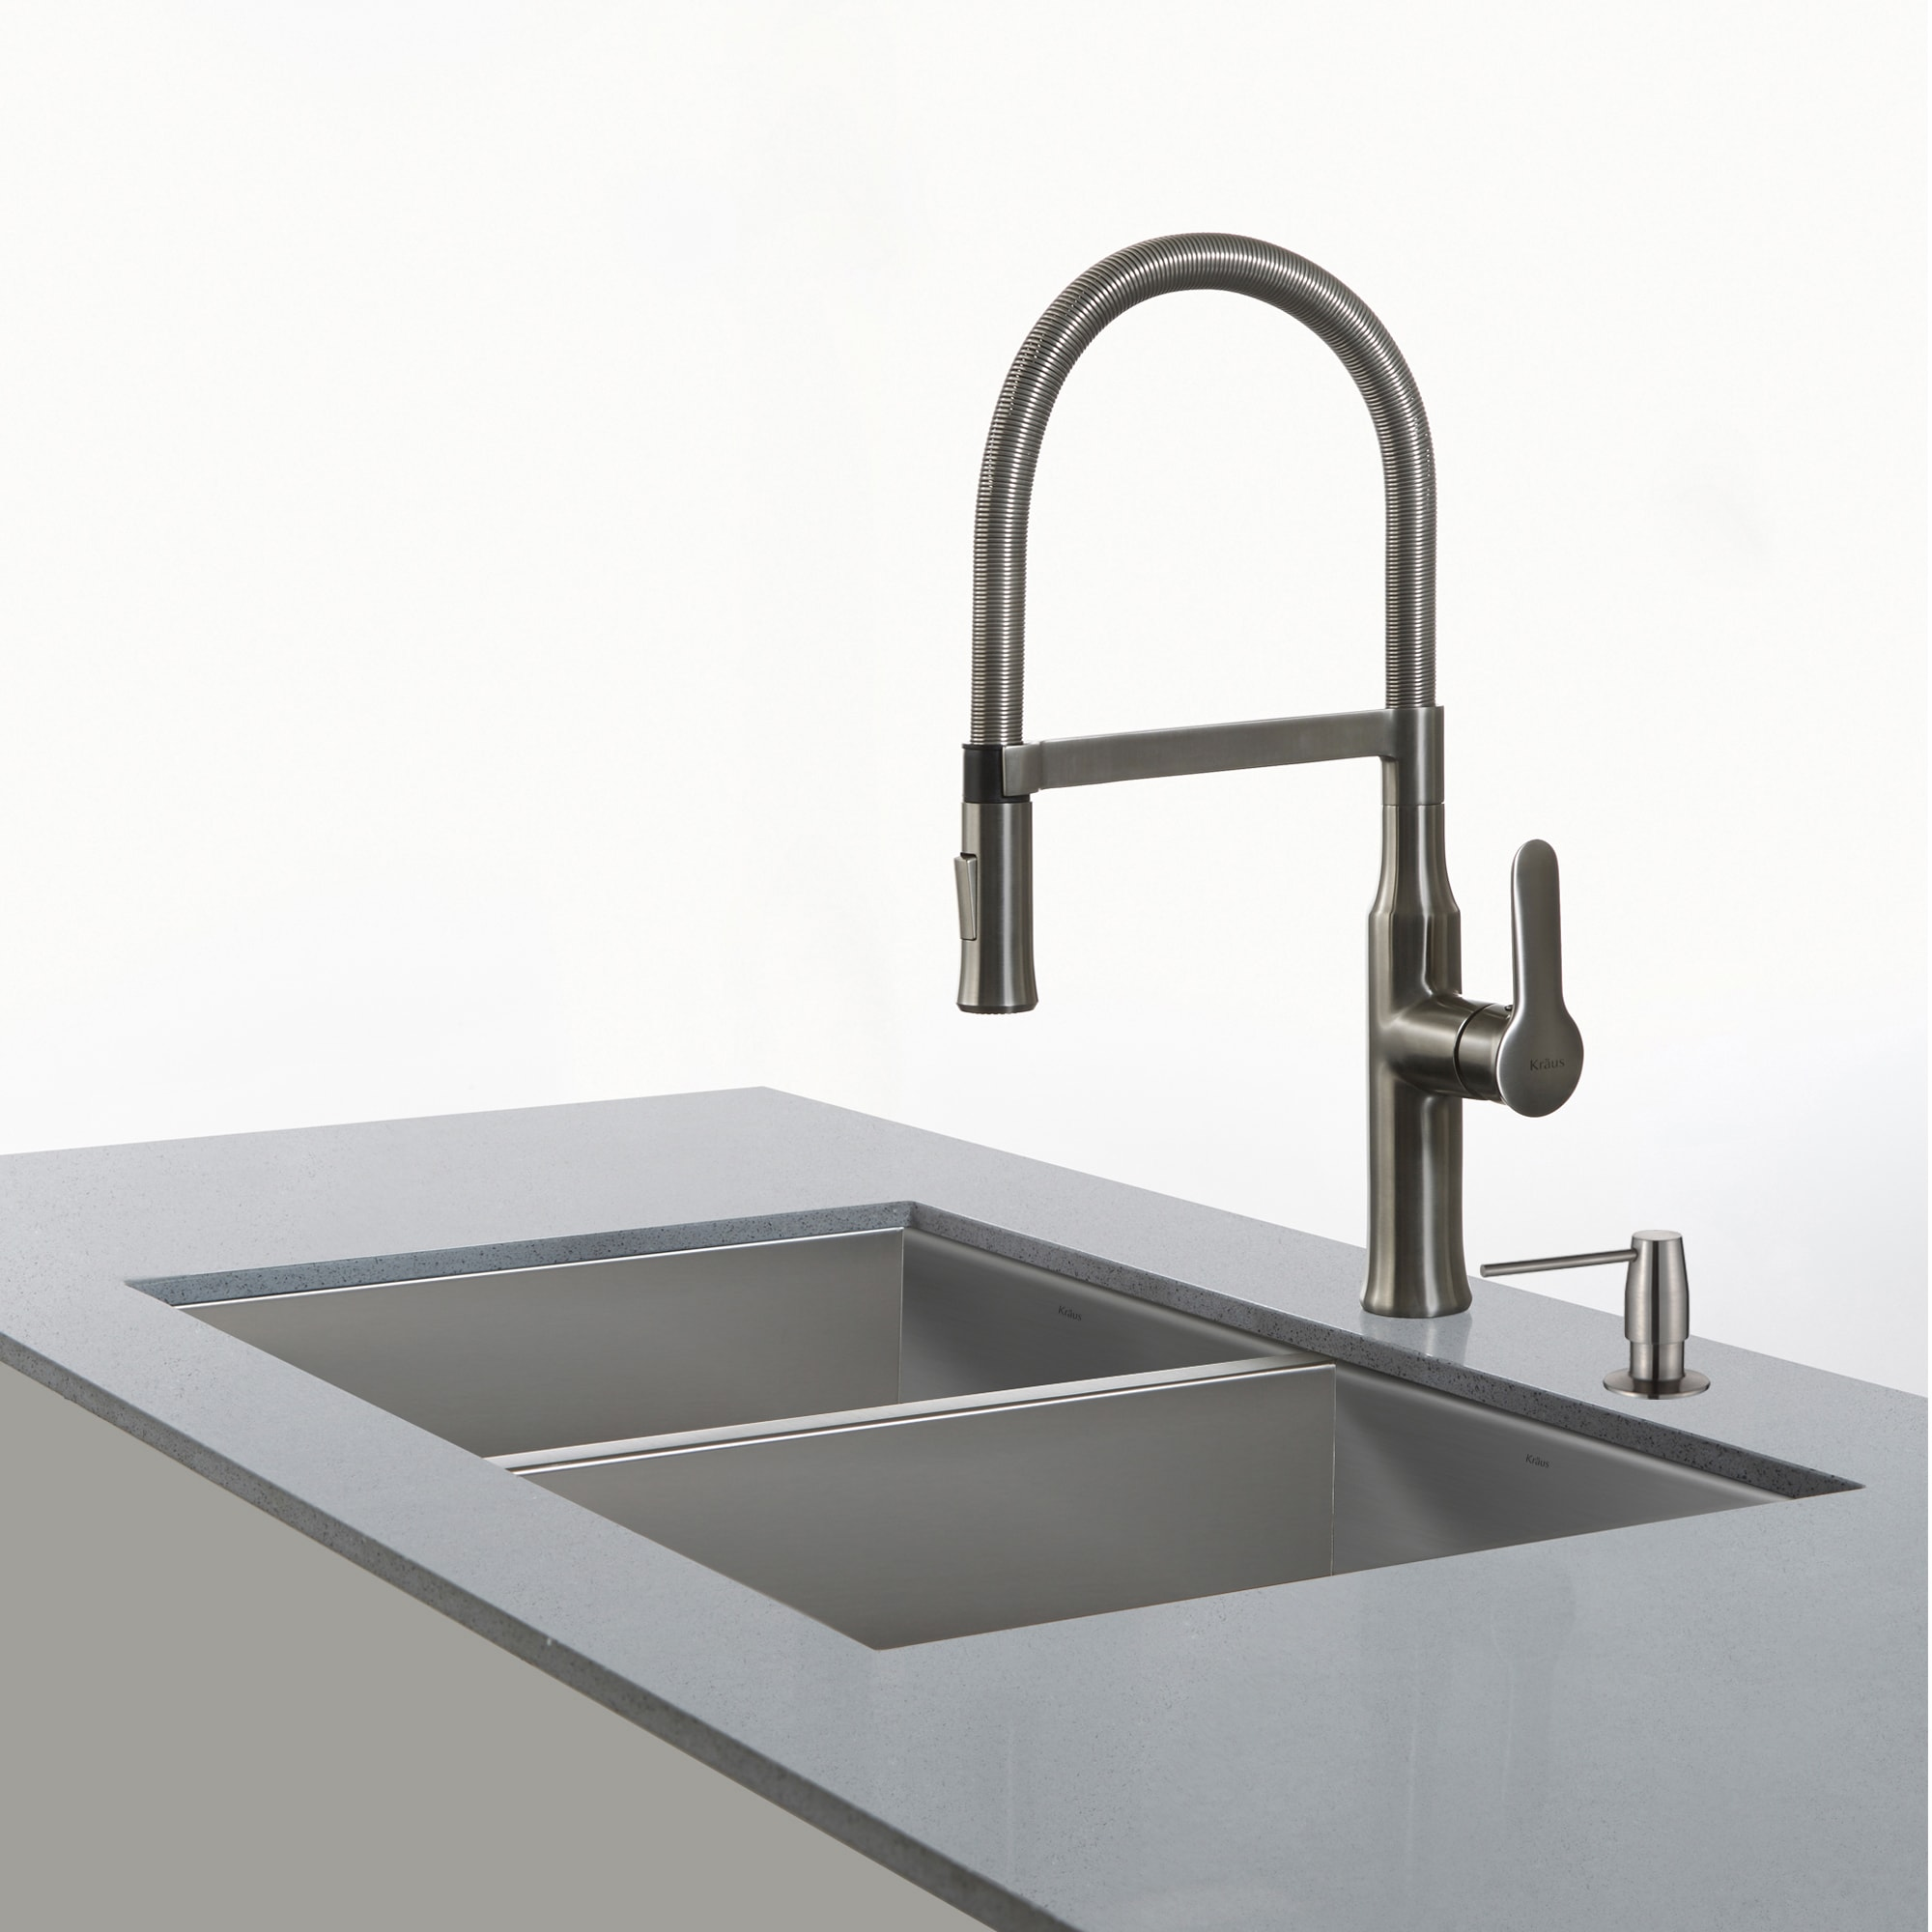 country fresh of kitchen picture style mercial faucets faucet kraus best decoration commercial